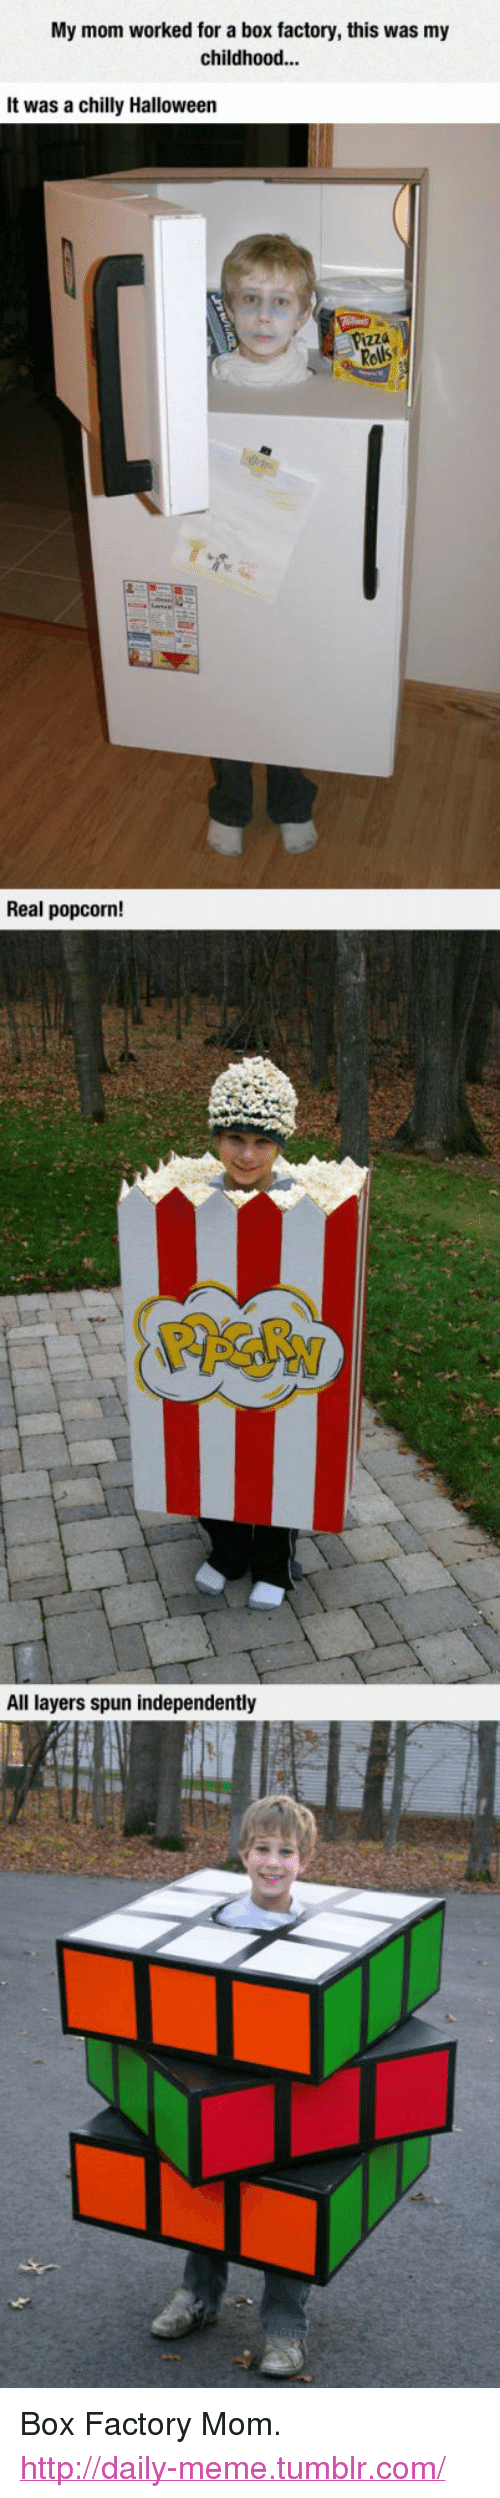 """Popcorn: My mom worked for a box factory, this was my  childhood...  It was a chilly Halloween  Pizza  Rolls  Real popcorn!  All layers spun independently <p>Box Factory Mom.<br/><a href=""""http://daily-meme.tumblr.com""""><span style=""""color: #0000cd;""""><a href=""""http://daily-meme.tumblr.com/"""">http://daily-meme.tumblr.com/</a></span></a></p>"""